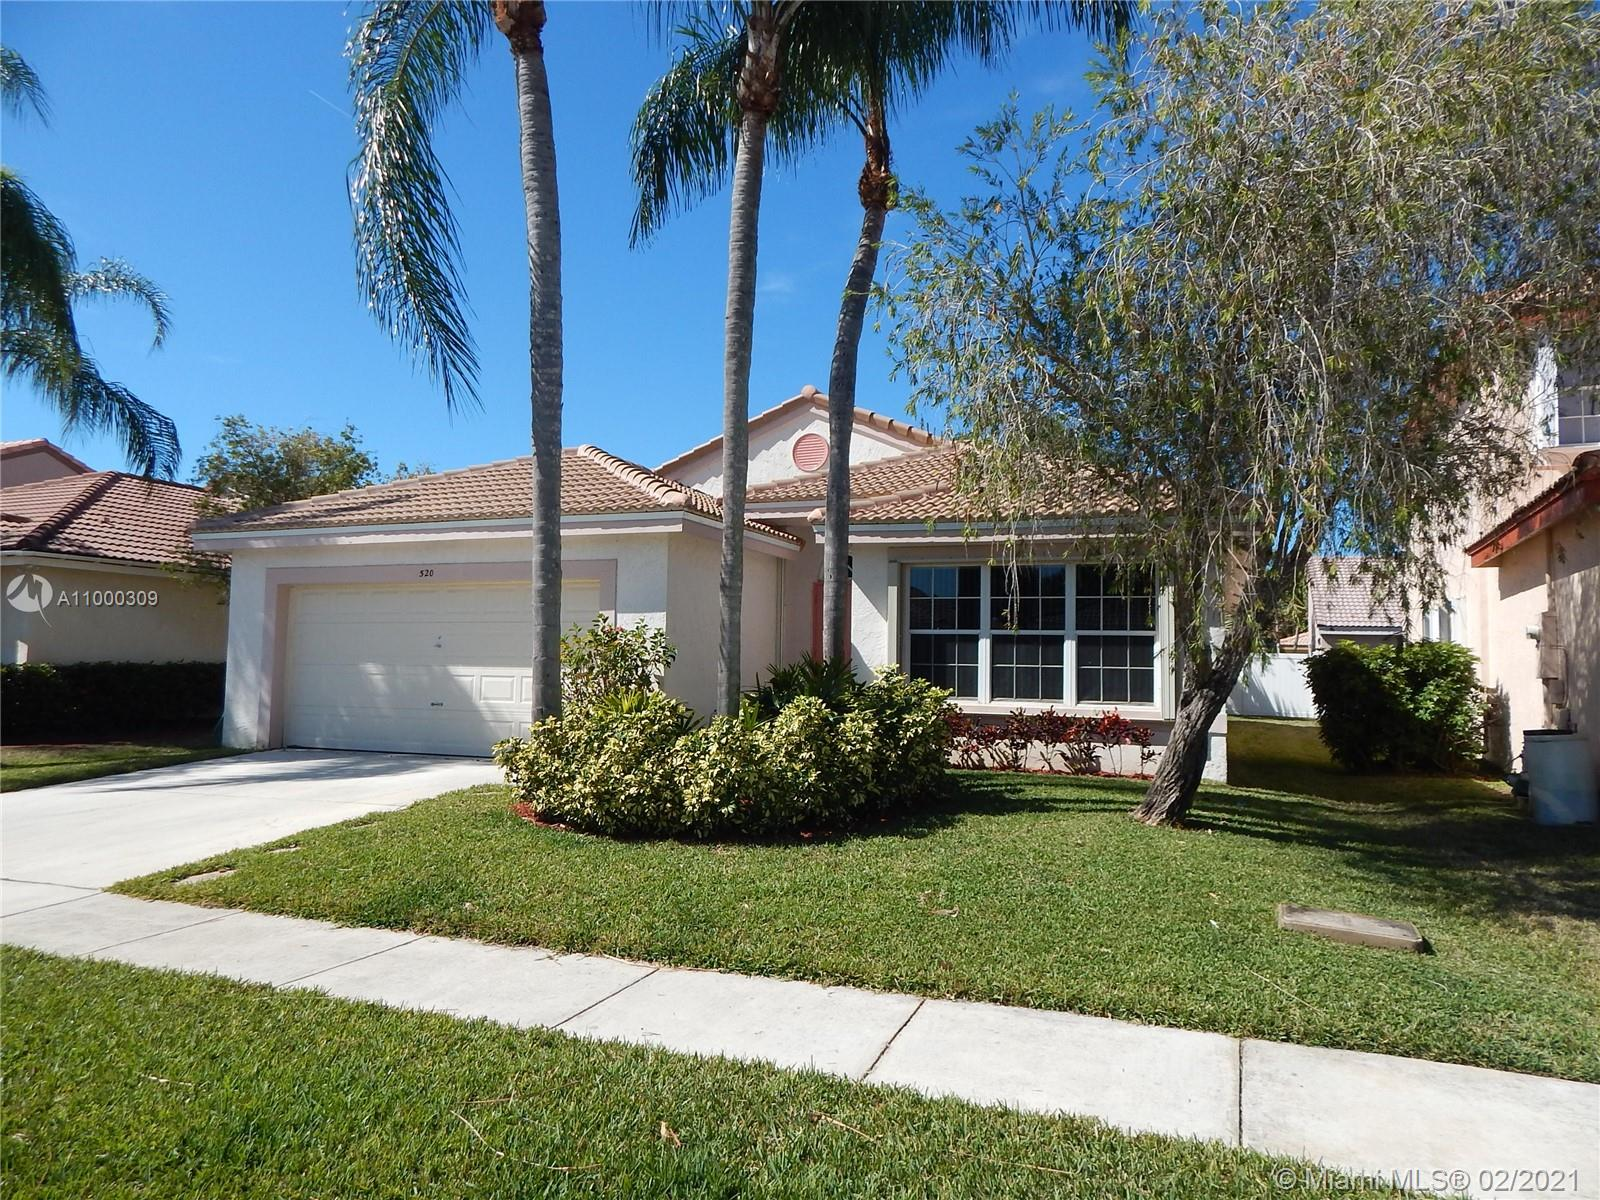 Beautiful home in Pembroke Pines, roof was replaced in 2020, the home has hurricane shutters and the garage door is impact resistance.